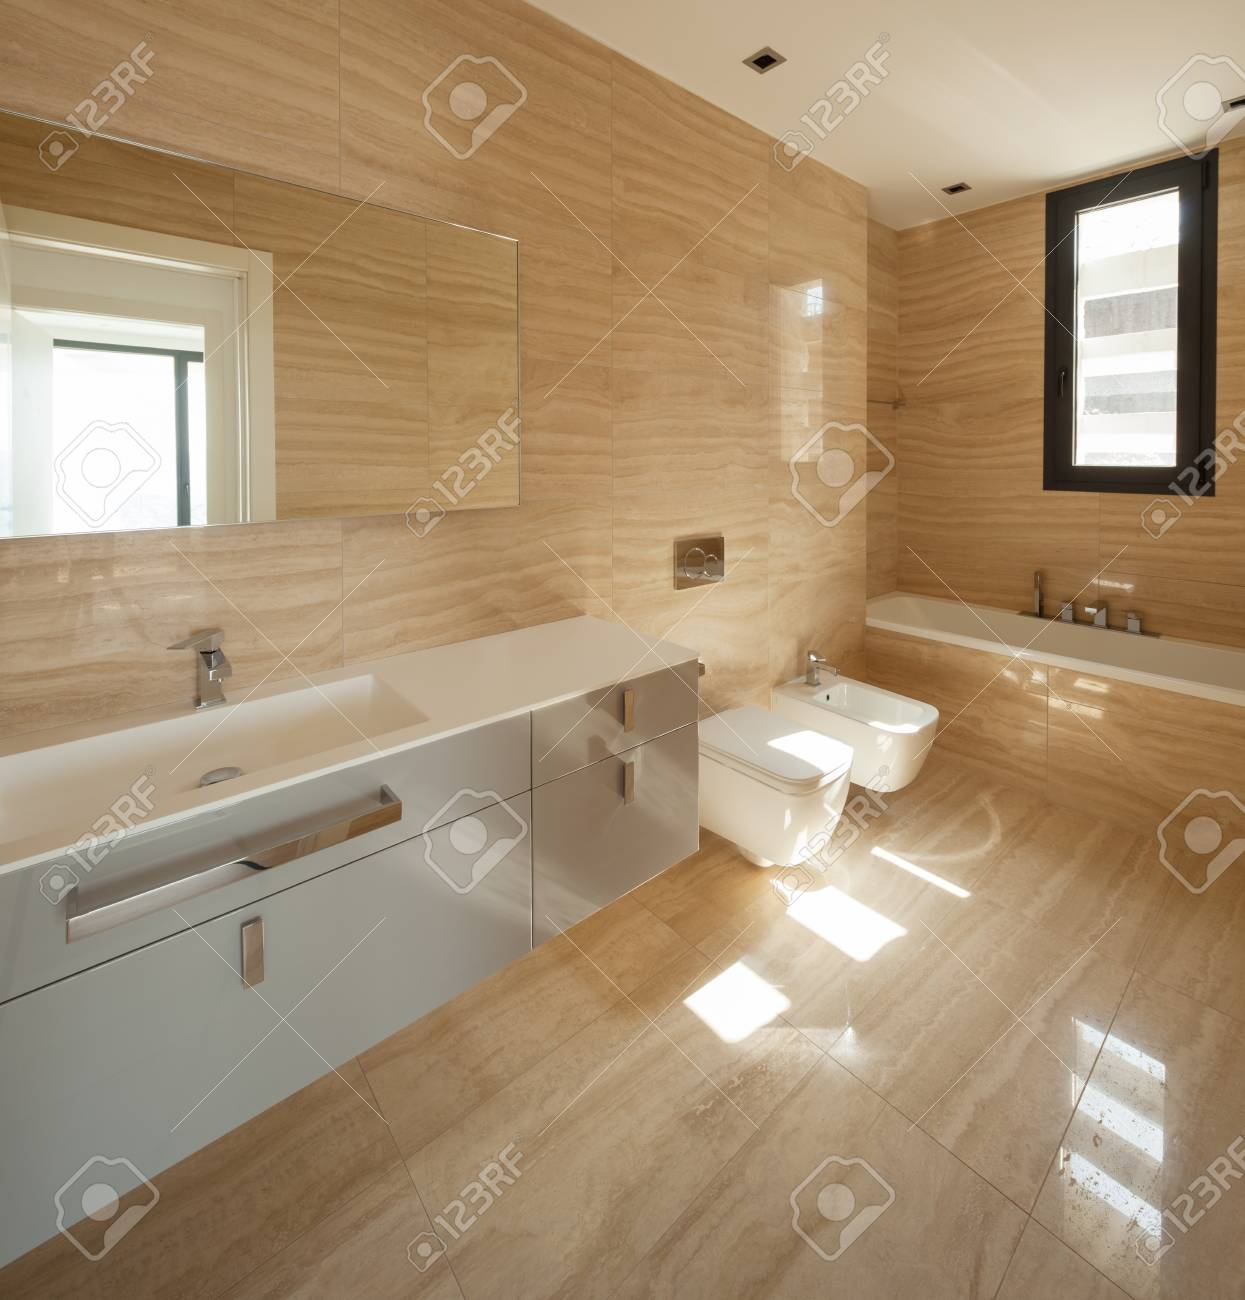 Beige Marble Bathroom Stock Photo Picture And Royalty Free Image Image 77438341